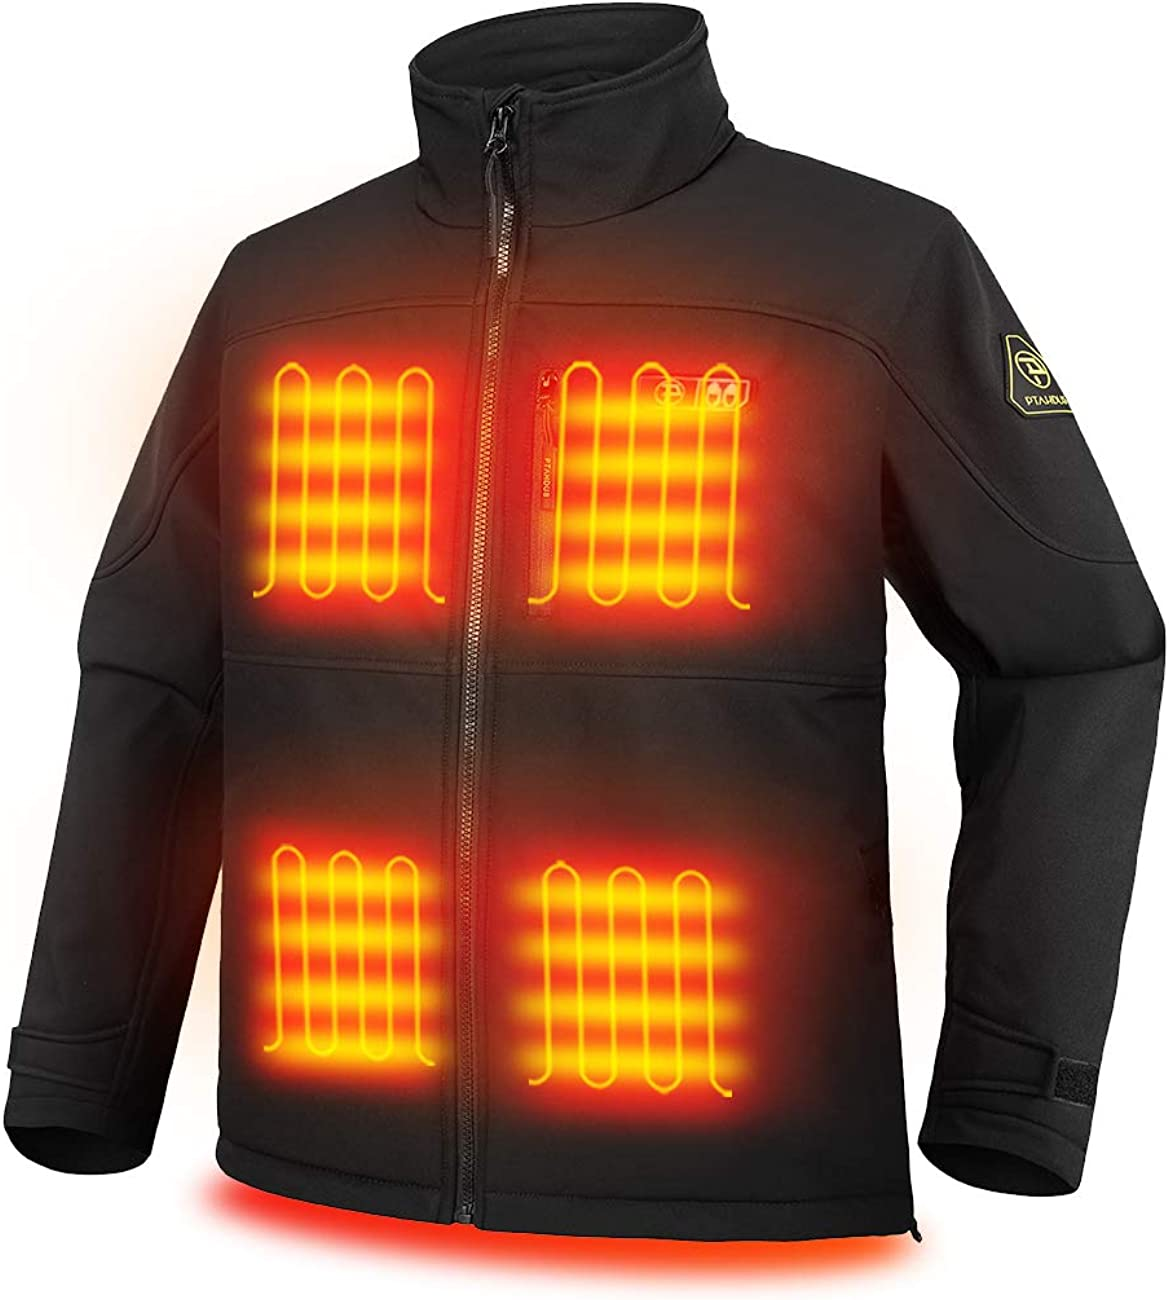 Ptahdus Men's Heated Jacket Soft Shell with Hand Warmer, with 7.4V Battery Pack